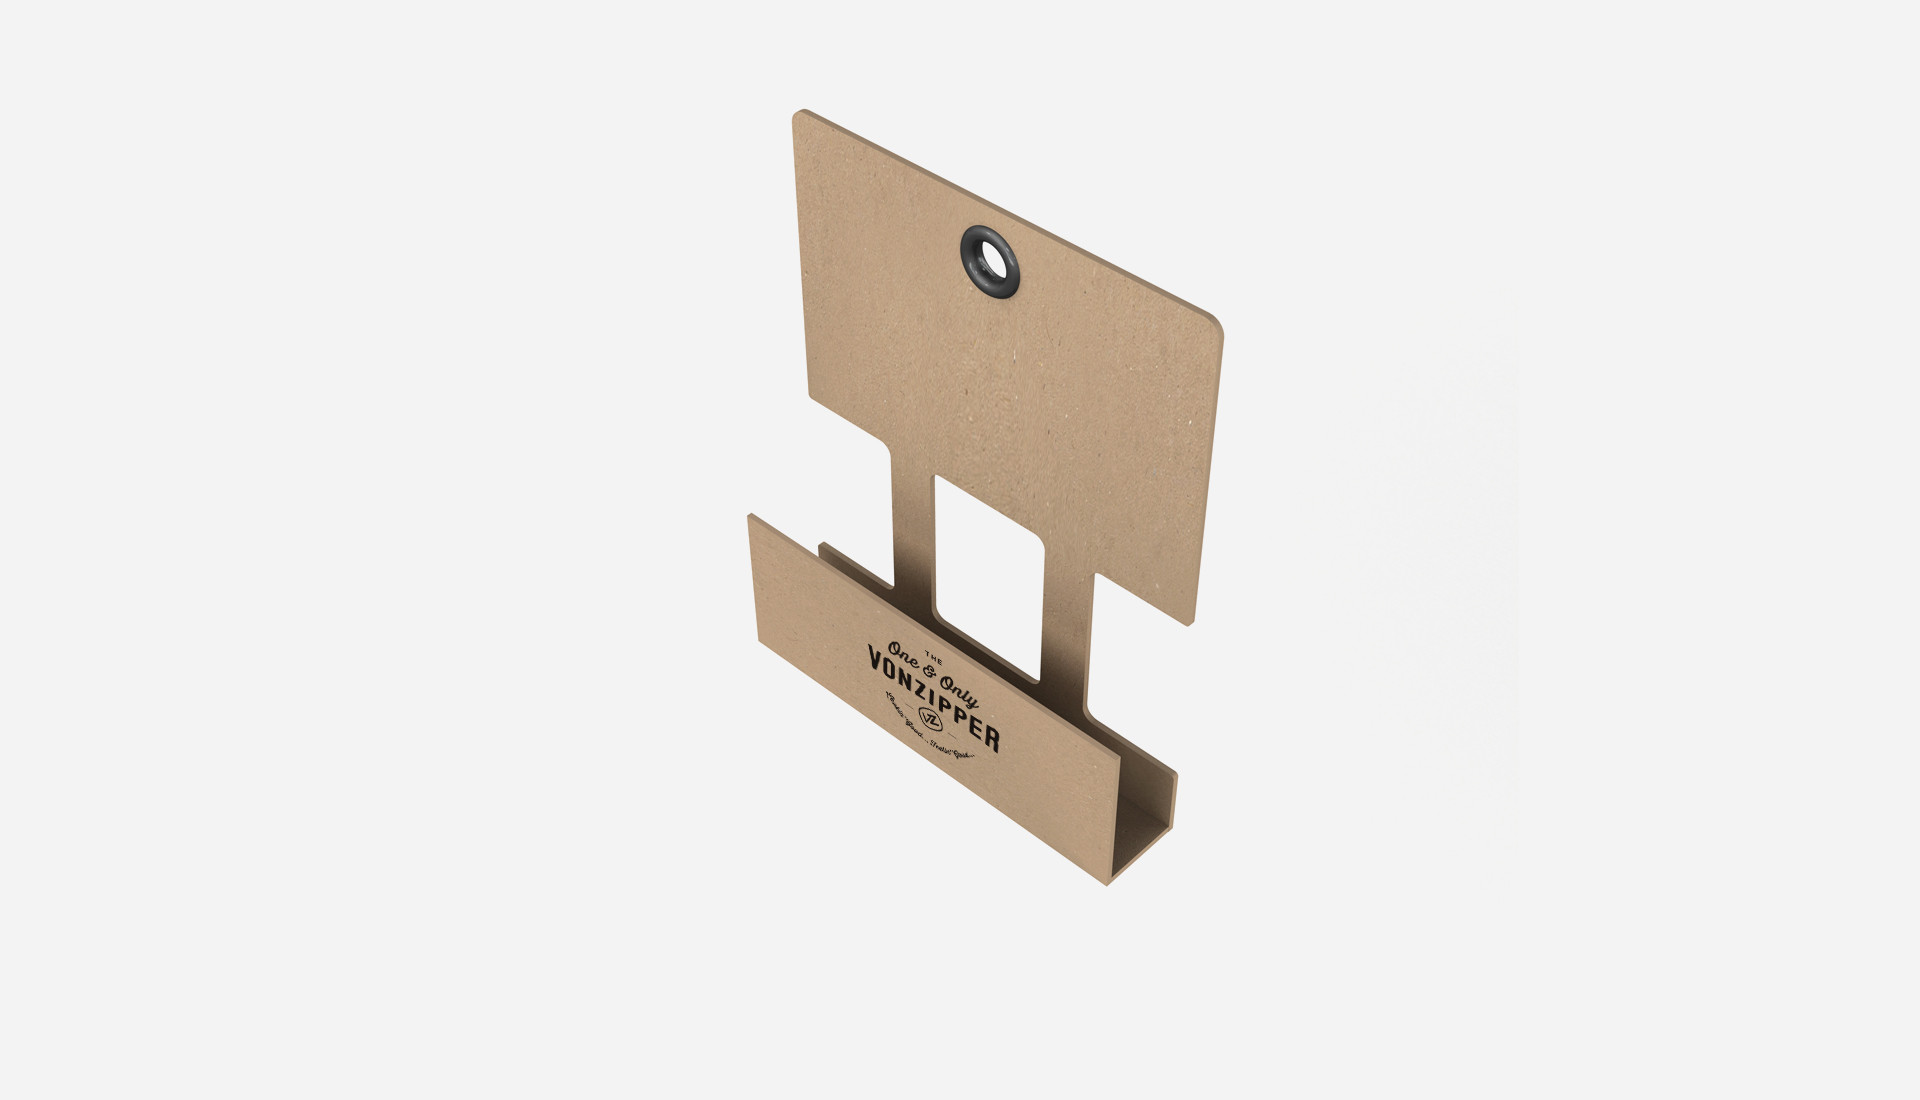 PRODUCT DESIGN + PACKAGING